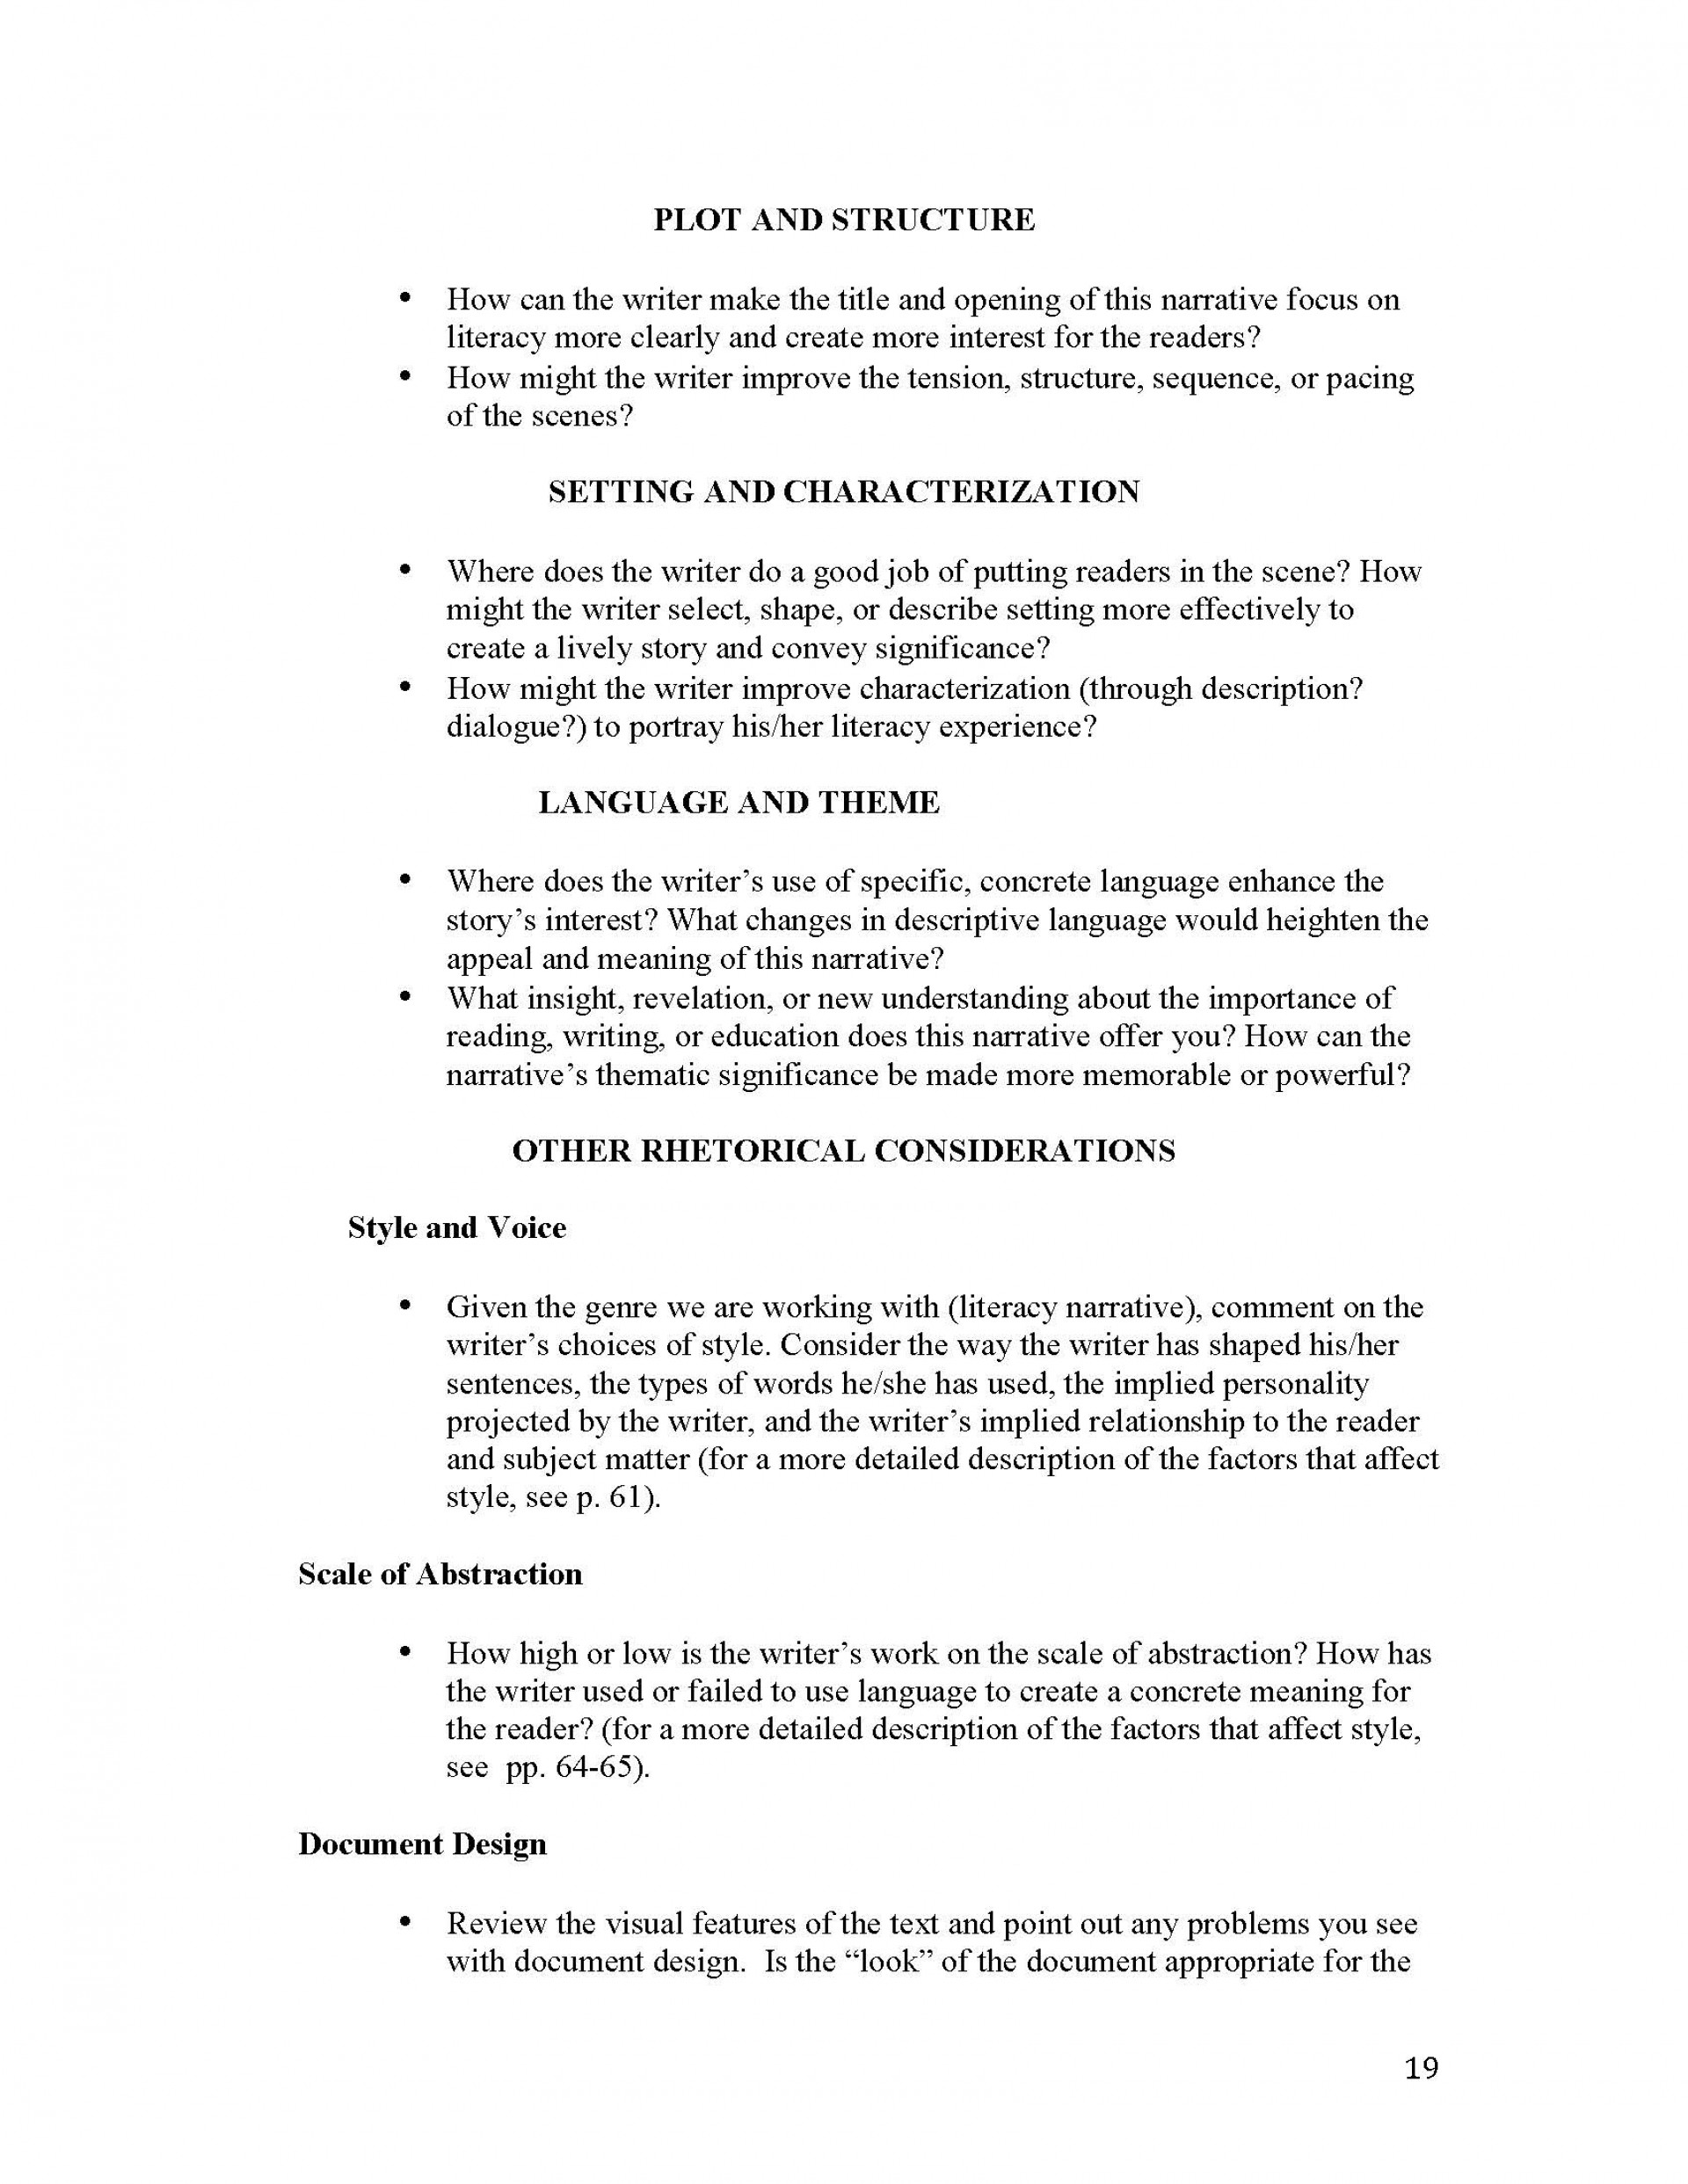 007 Essay Example On Immigration Unit 1 Literacy Narrative Instructor Copy Page 19 Unforgettable In Usa Essays Policy The United States 1920